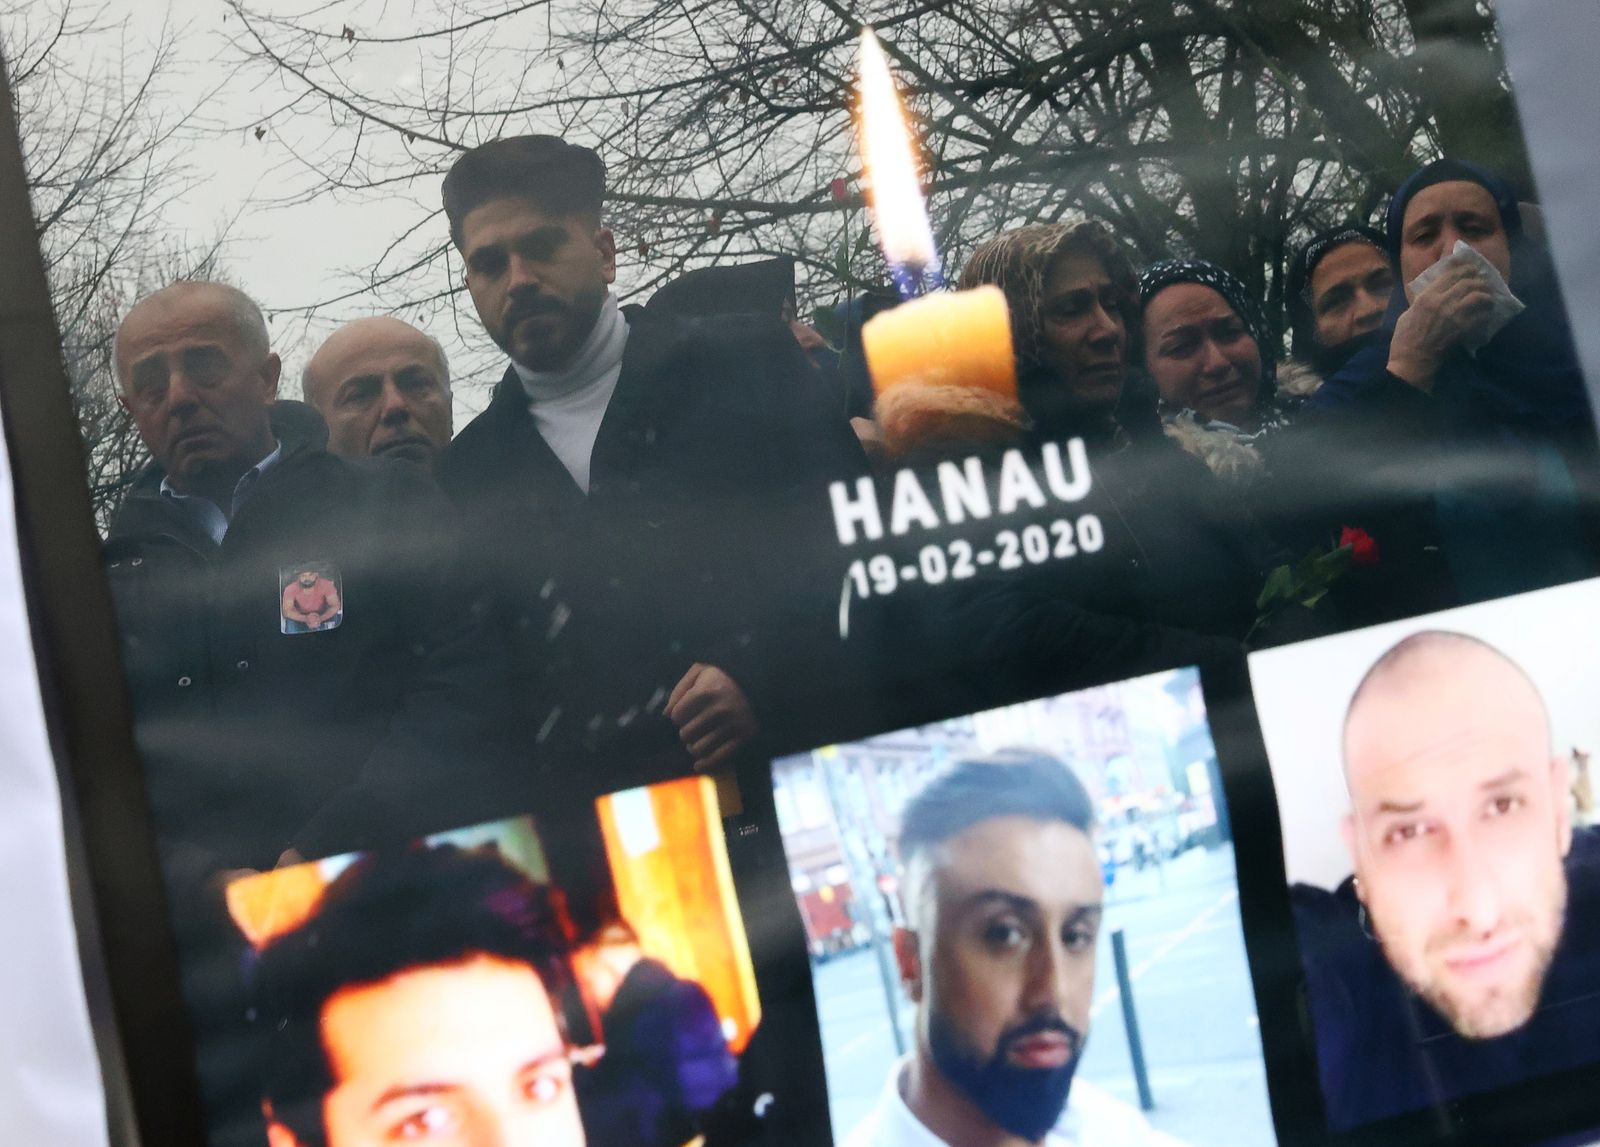 Funeral service for one of the victims after the shootings in Hanau